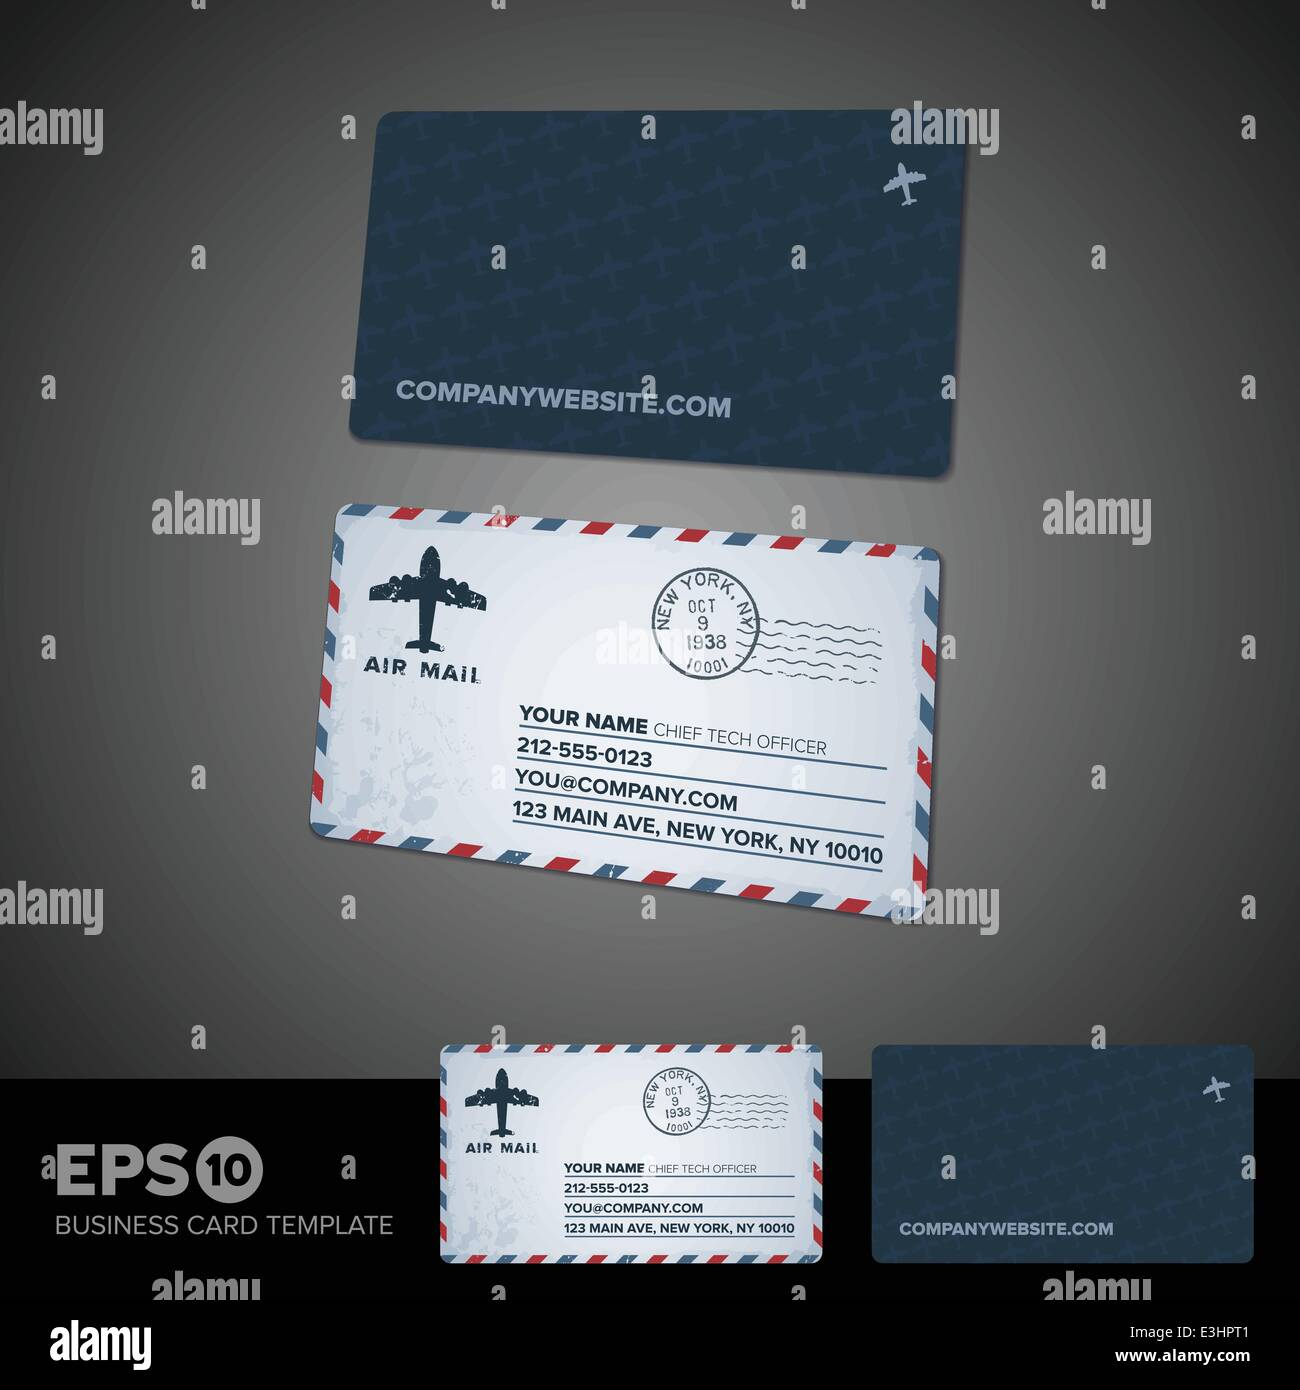 Rounded corner air mail retro business card template stock vector rounded corner air mail retro business card template accmission Gallery